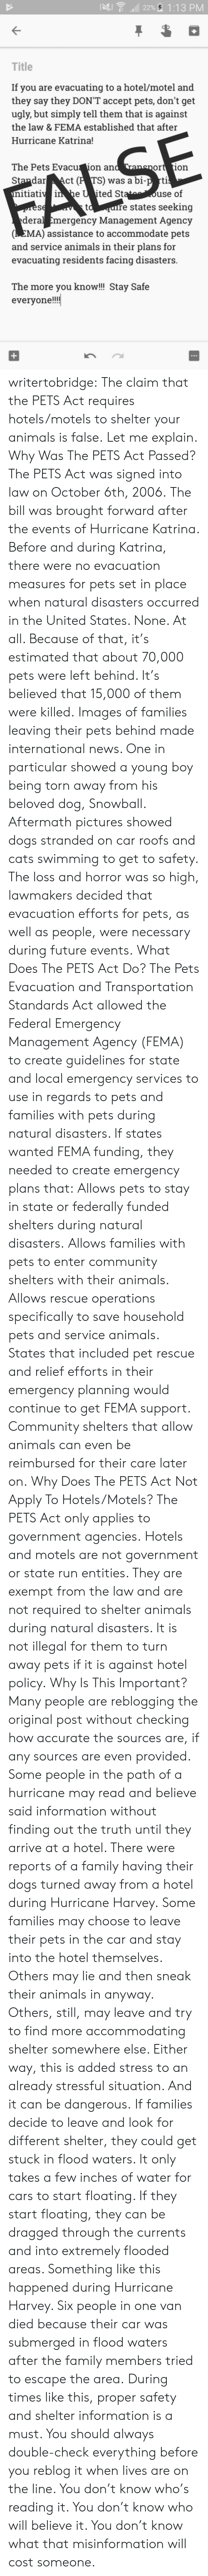 ema: 22%A 1:13 PM  Title  If you are evacuating to a hotel/motel and  they say they DON'T accept pets, don't get  ugly, but simply tell them that is against  the law & FEMA established that after  Hurricane Katrina!  The Pets Evacu ion an  StandarAct (P TS) was a bi-p rti  itiaii he U ited St  ort 1on  use of  re states seeking  deral Emergency Management Agency  (EMA) assistance to accommodate pets  and service animals in their plans for  evacuating residents facing disasters  The more you know!!! Stay Safe  everyon!! writertobridge: The claim that the PETS Act requires hotels/motels to shelter your animals is false. Let me explain. Why Was The PETS Act Passed? The PETS Act was signed into law on October 6th, 2006. The bill was brought forward after the events of Hurricane Katrina. Before and during Katrina, there were no evacuation measures for pets set in place when natural disasters occurred in the United States. None. At all. Because of that, it's estimated that about 70,000 pets were left behind. It's believed that 15,000 of them were killed. Images of families leaving their pets behind made international news. One in particular showed a young boy being torn away from his beloved dog, Snowball. Aftermath pictures showed dogs stranded on car roofs and cats swimming to get to safety. The loss and horror was so high, lawmakers decided that evacuation efforts for pets, as well as people, were necessary during future events. What Does The PETS Act Do? The Pets Evacuation and Transportation Standards Act allowed the Federal Emergency Management Agency (FEMA) to create guidelines for state and local emergency services to use in regards to pets and families with pets during natural disasters. If states wanted FEMA funding, they needed to create emergency plans that: Allows pets to stay in state or federally funded shelters during natural disasters.  Allows families with pets to enter community shelters with their animals. Allows rescue operations specifically to save 